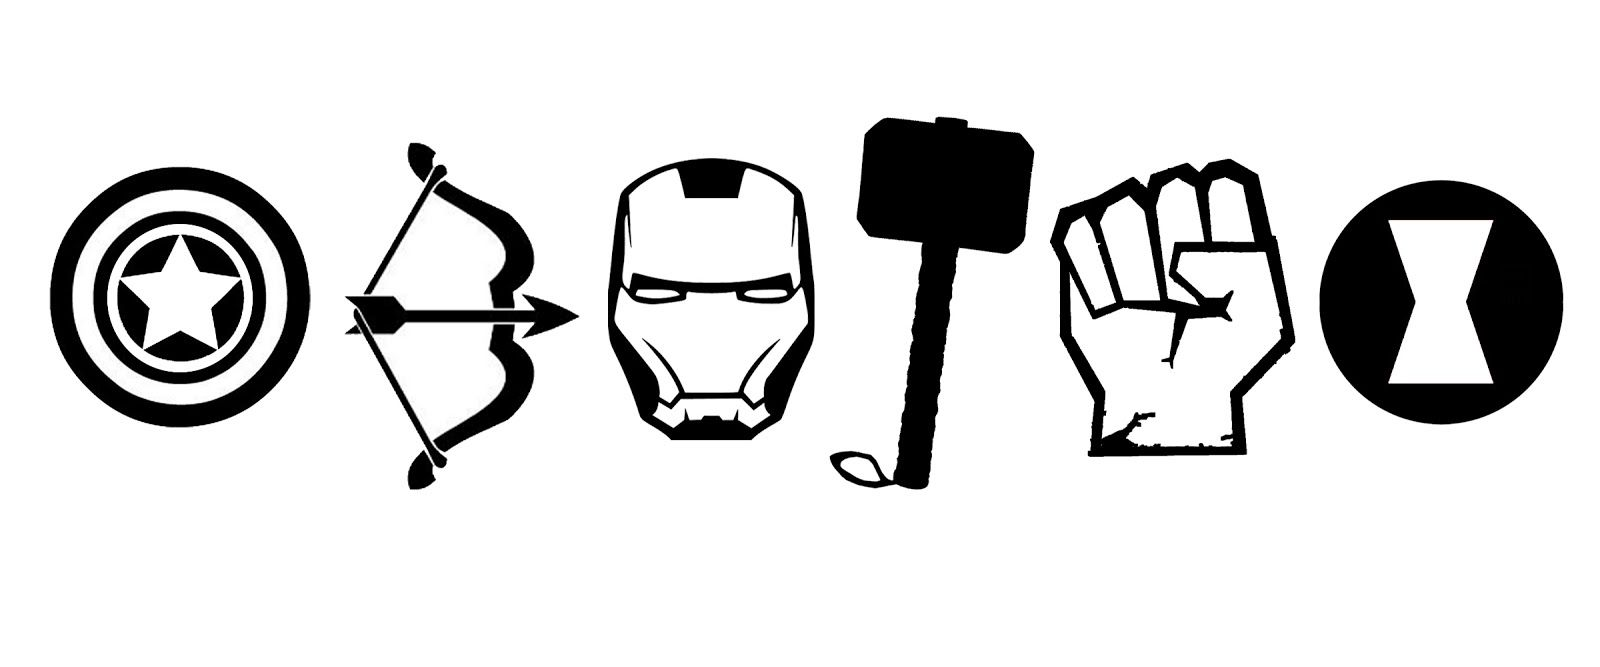 The t shirt stencil. Avengers clipart silhouette